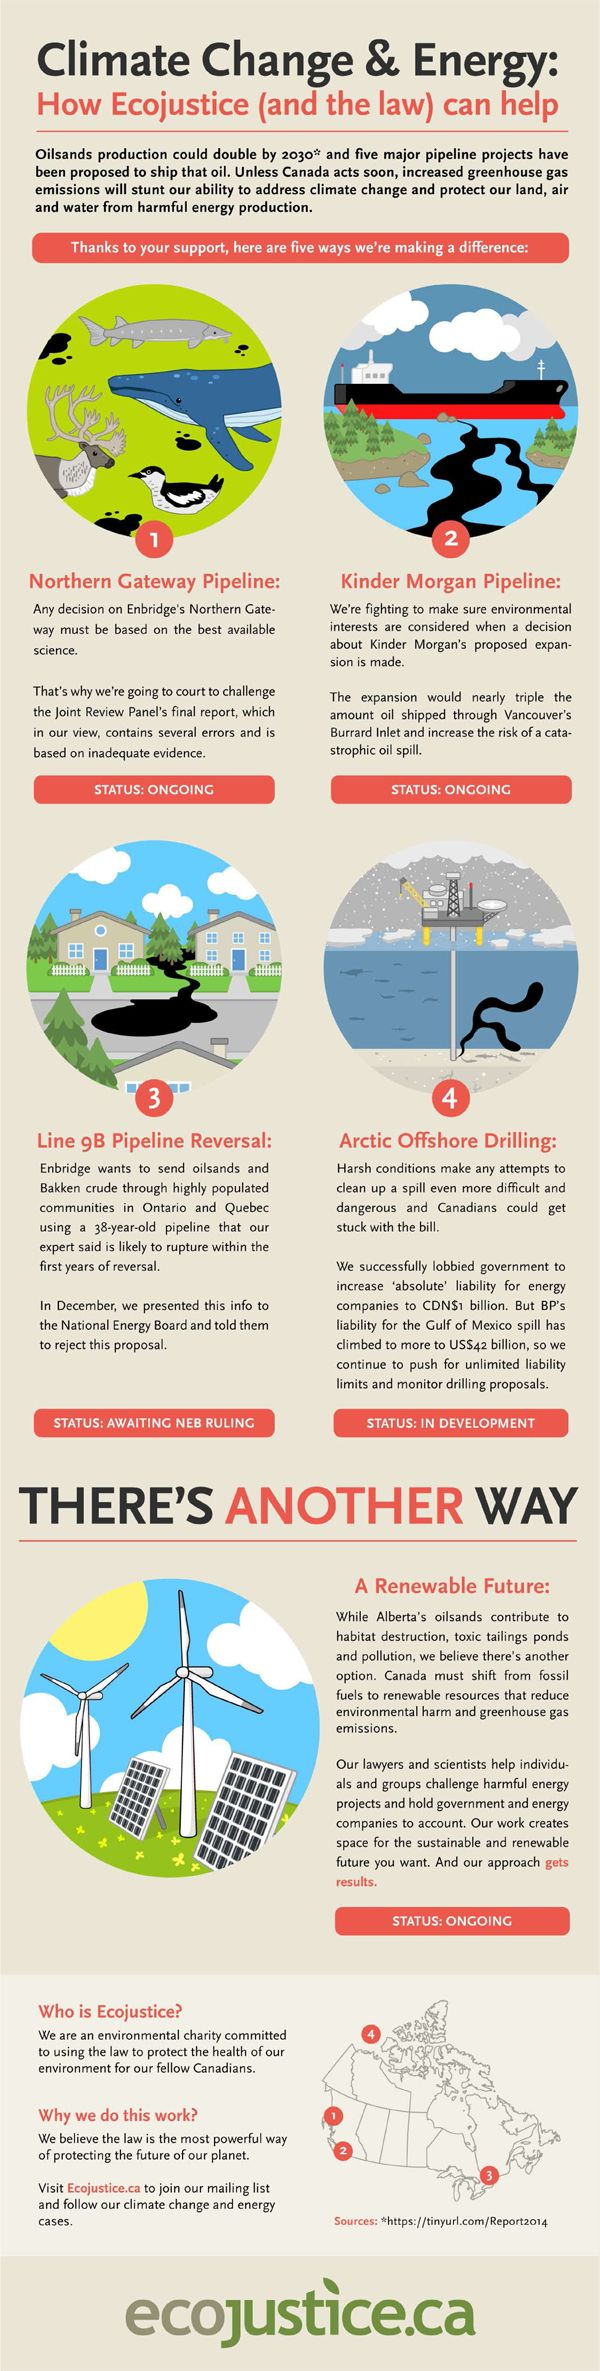 Climate Change & Energy: How Ecojustice (and the law) can help ... see at : http://www.ecojustice.ca/blog/climate-change-energy-how-ecojustice-and-the-law-can-help